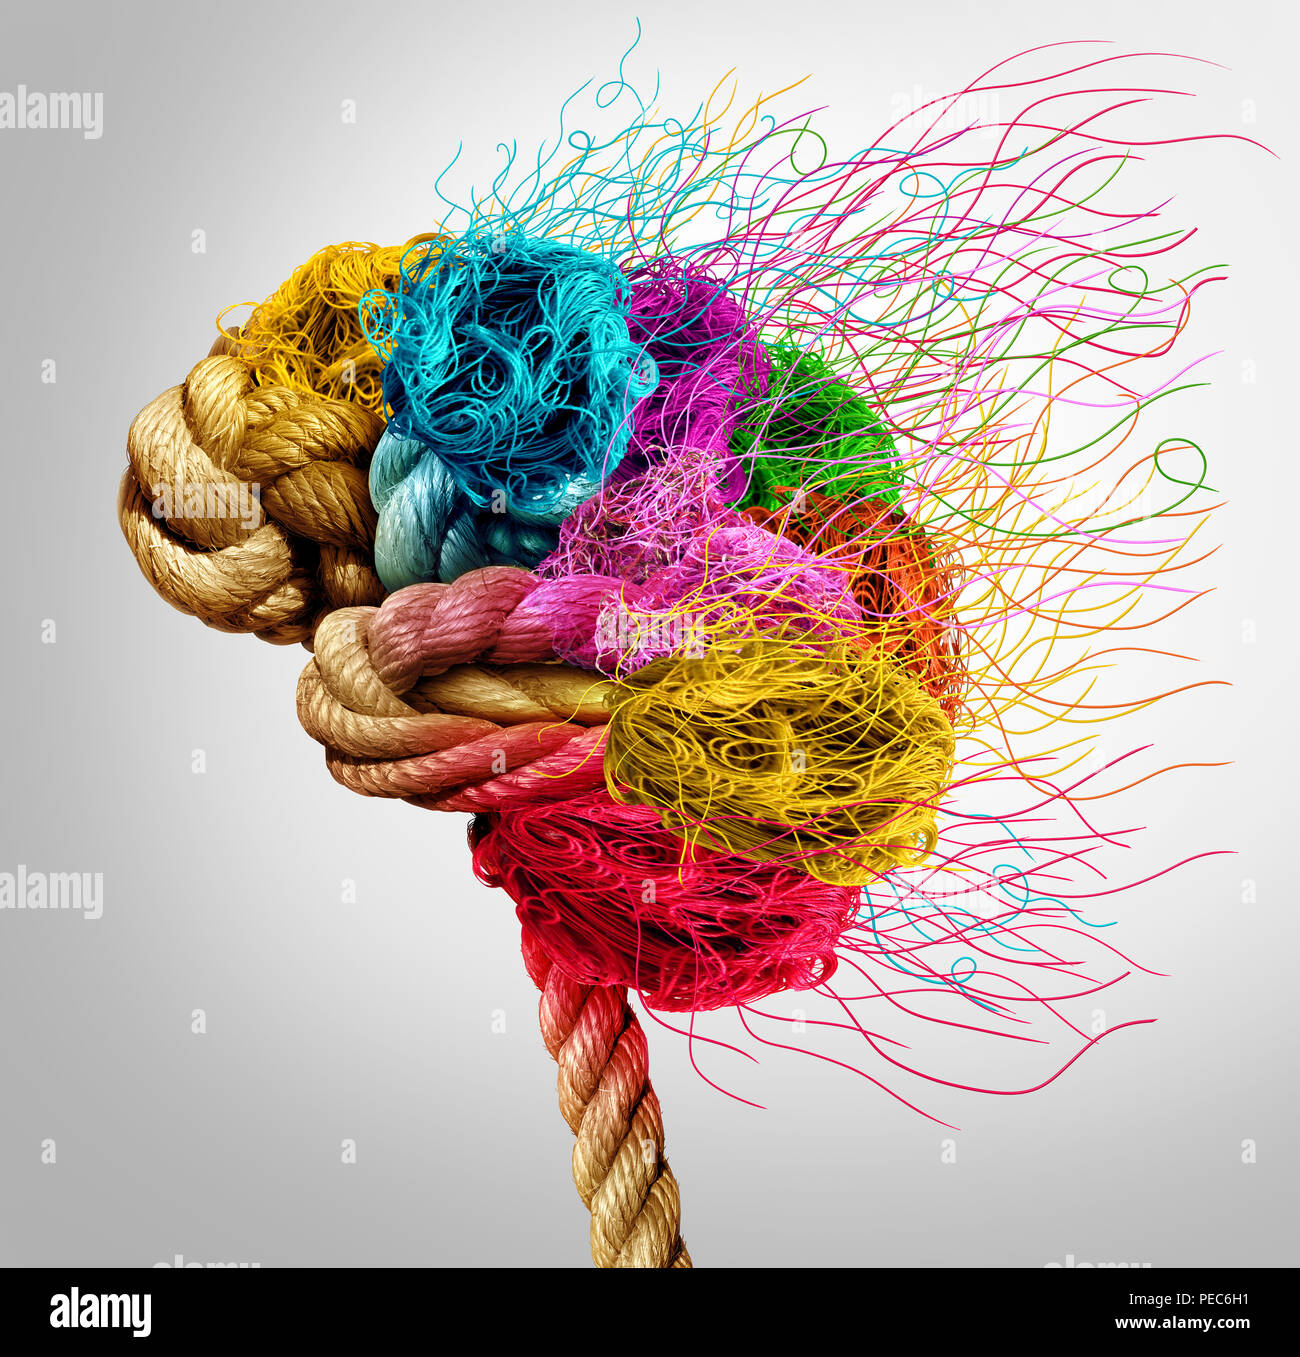 Brainstorming and brainstorm concept or psychology symbol as a creative human mind made of rope and thread in a 3D illustration style. - Stock Image